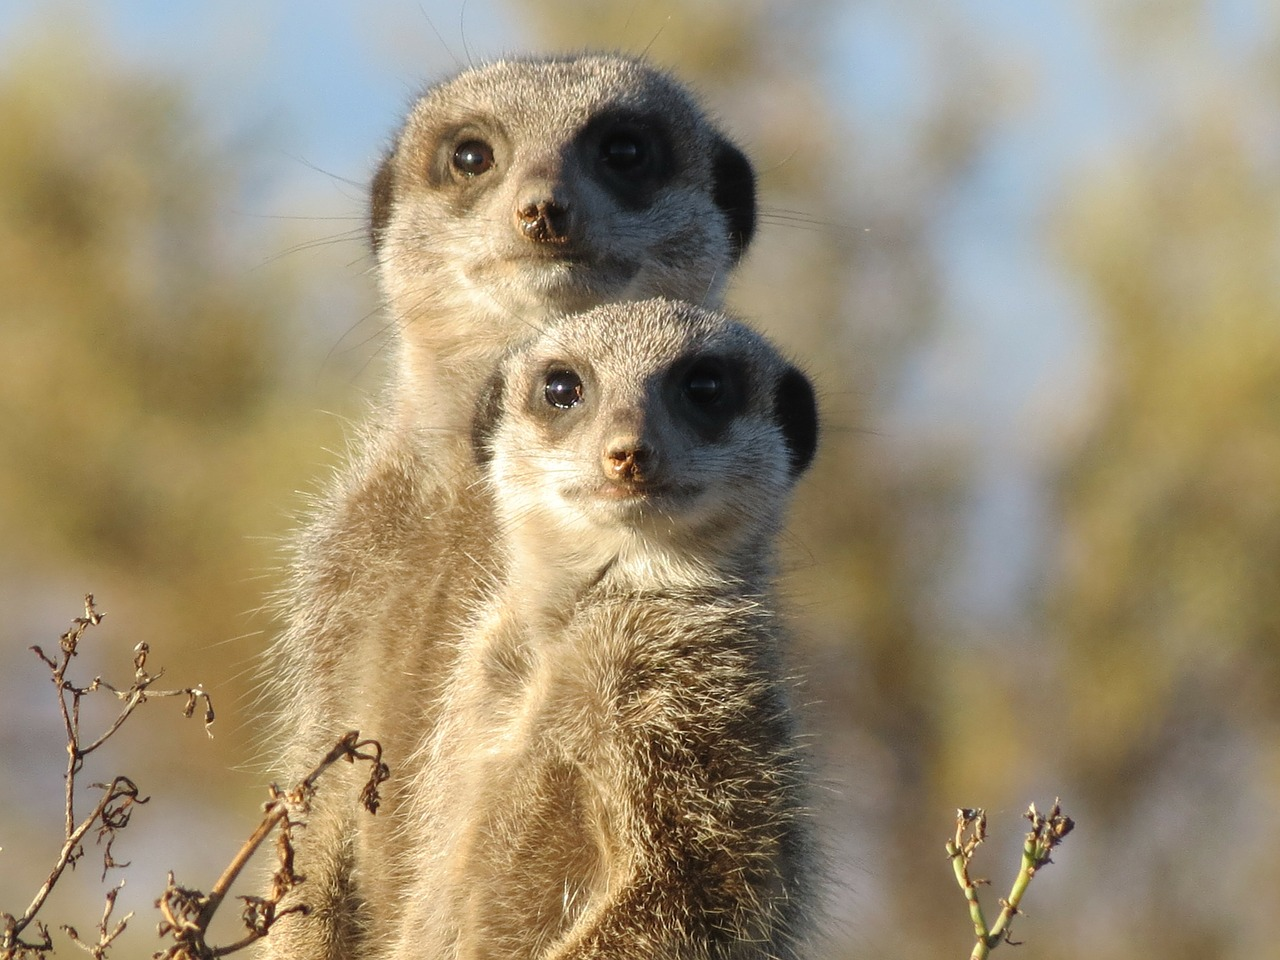 Our previous image was apparently offensive to at least one reader who took issue with the use of the face of Che Guevara. Instead, please enjoy these creepy meerkats staring at you, which work pretty well, too...